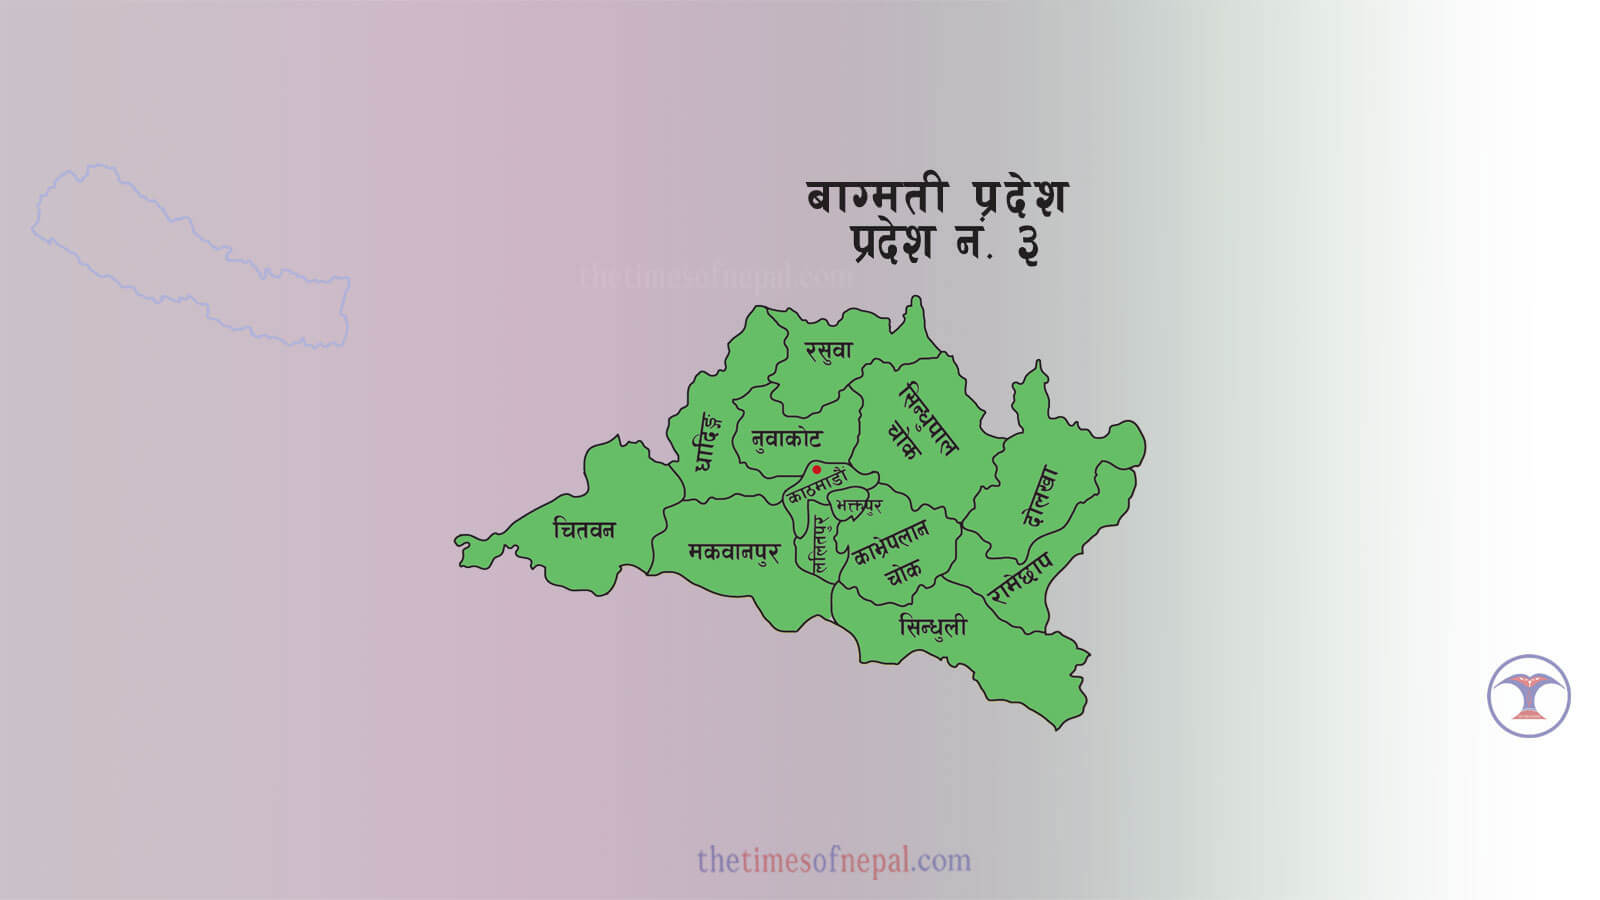 Bagmati Pradesh - The Times Of Nepal